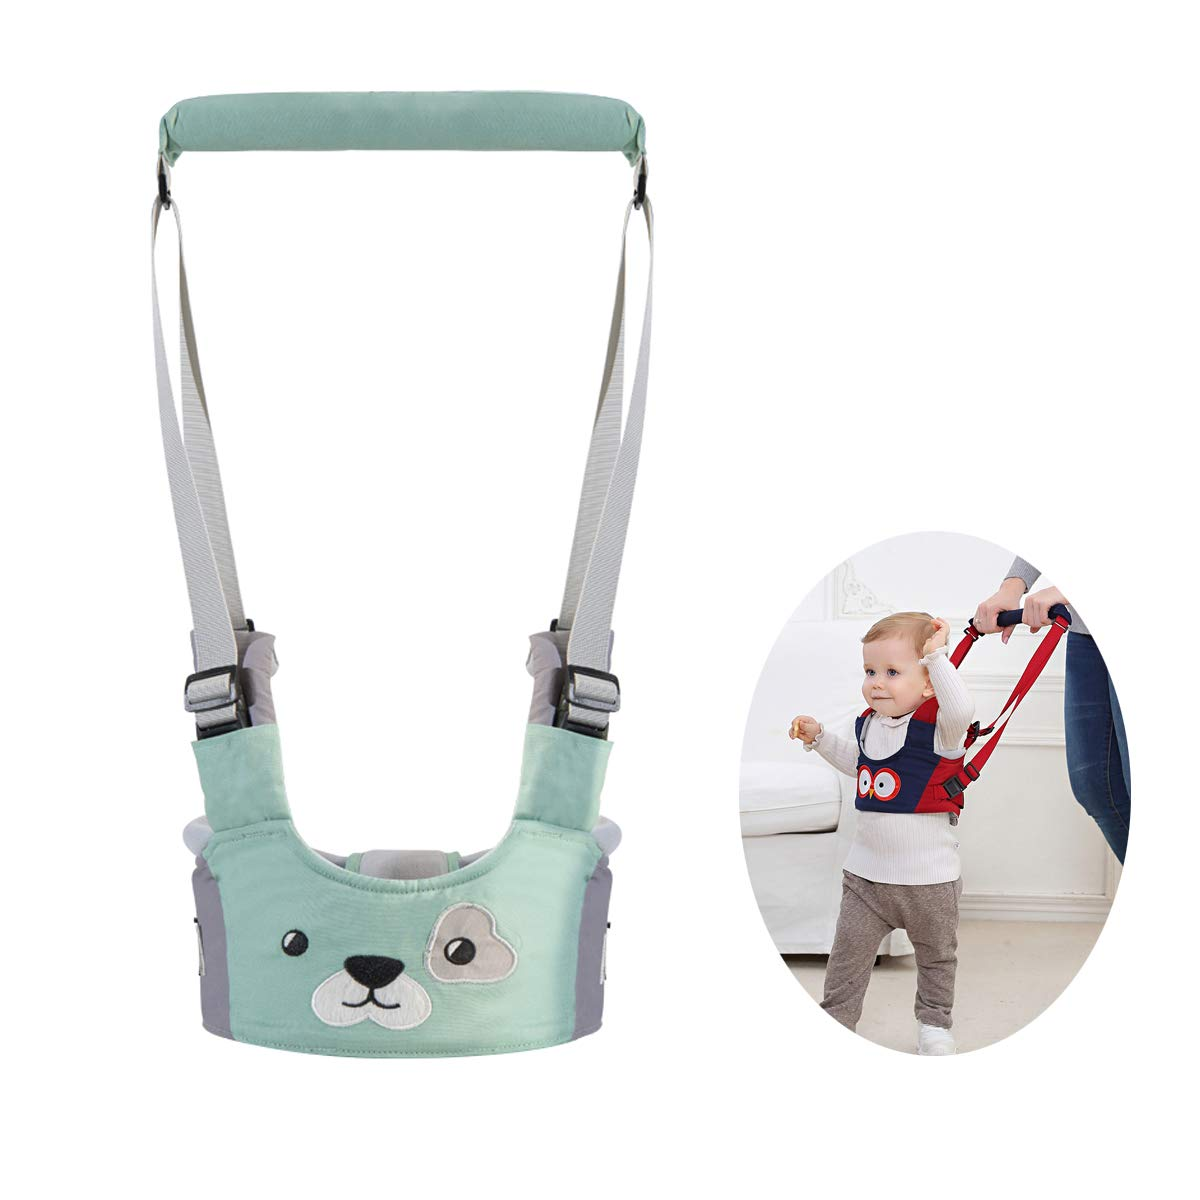 Baby Walking Harness Adjustable Baby Walker Assistant Protective Belt for Kids Infant Toddlers (Green)